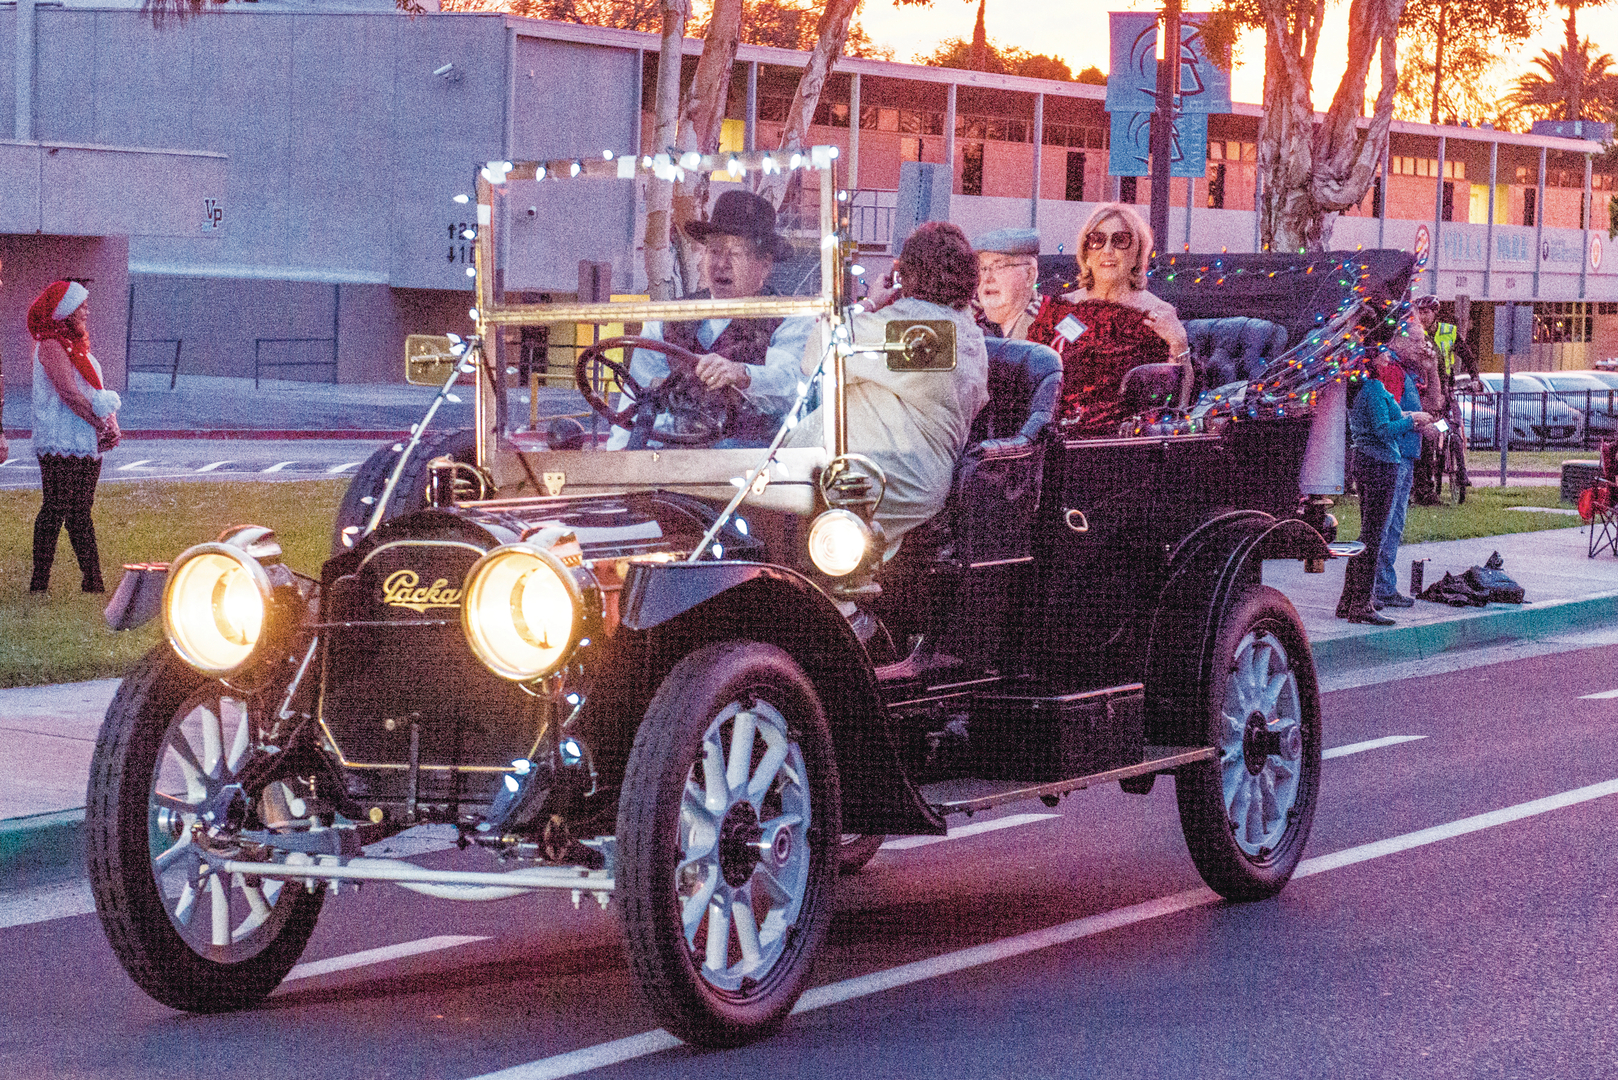 Antique Packard is highlight of parade